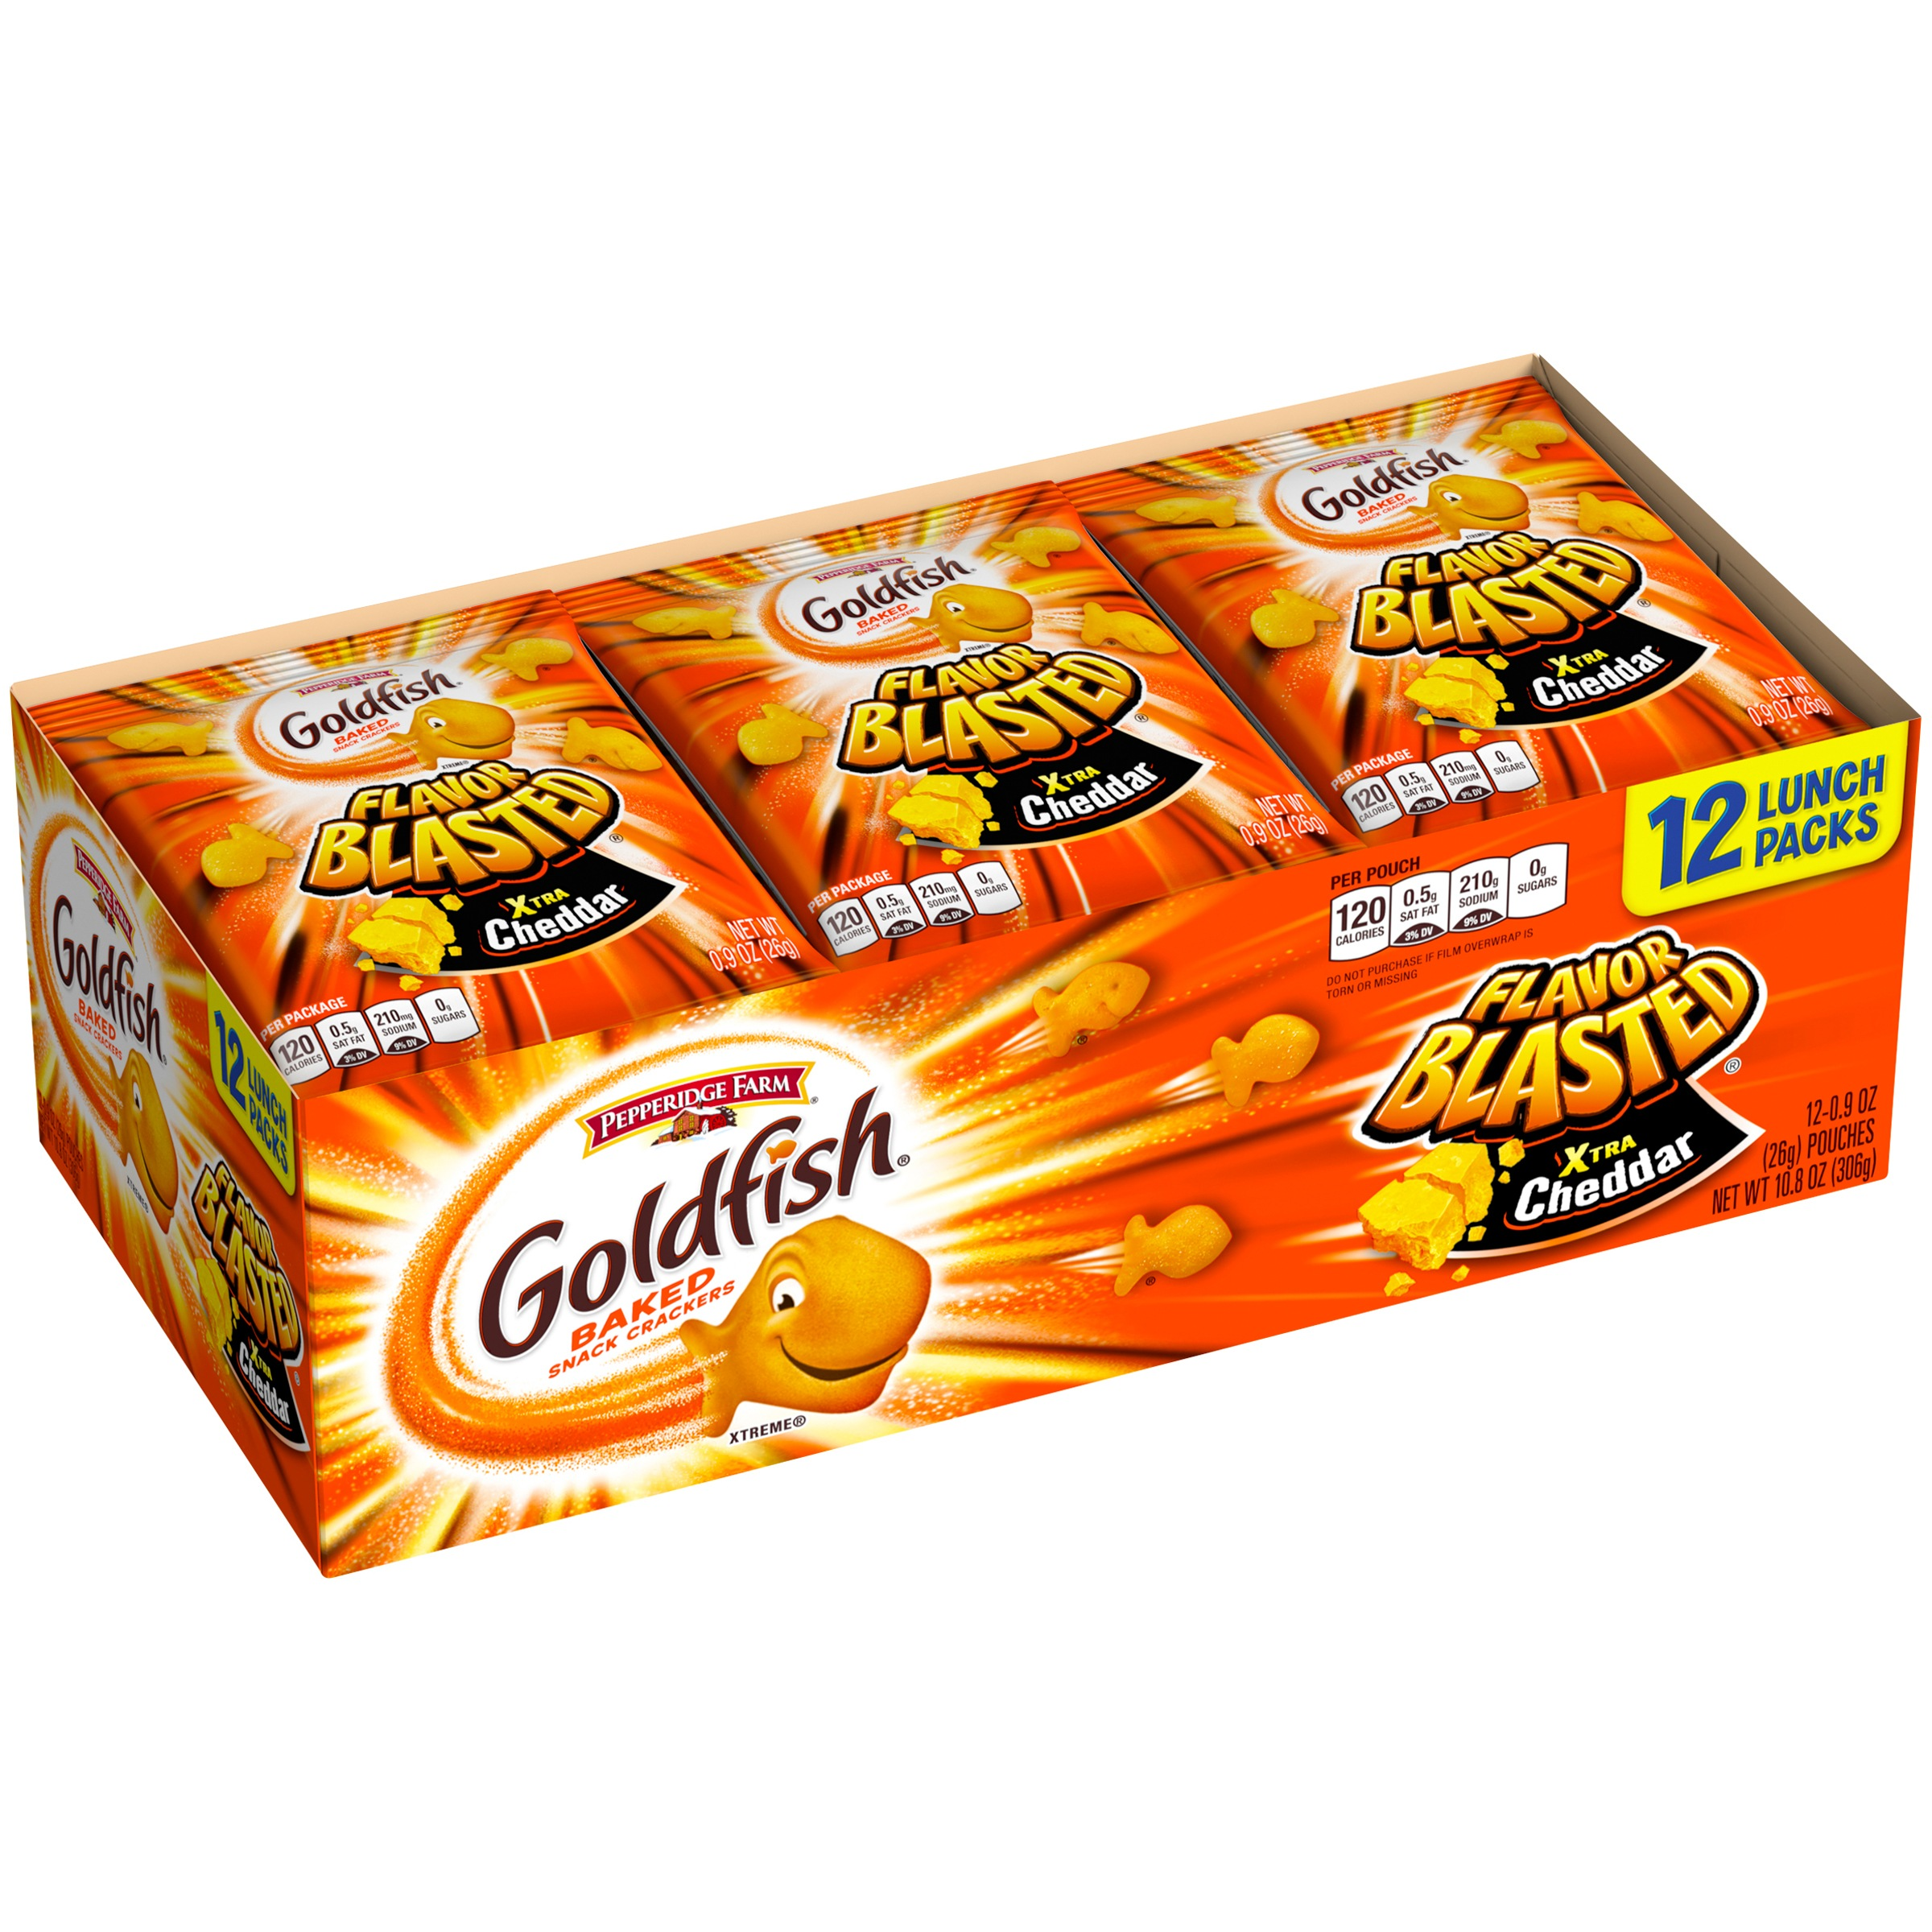 Goldfish Flavor Blasted Xtra Cheddar Baked Snack Crackers 12-0.9 oz. Pouches by Pepperidge Farm inc.